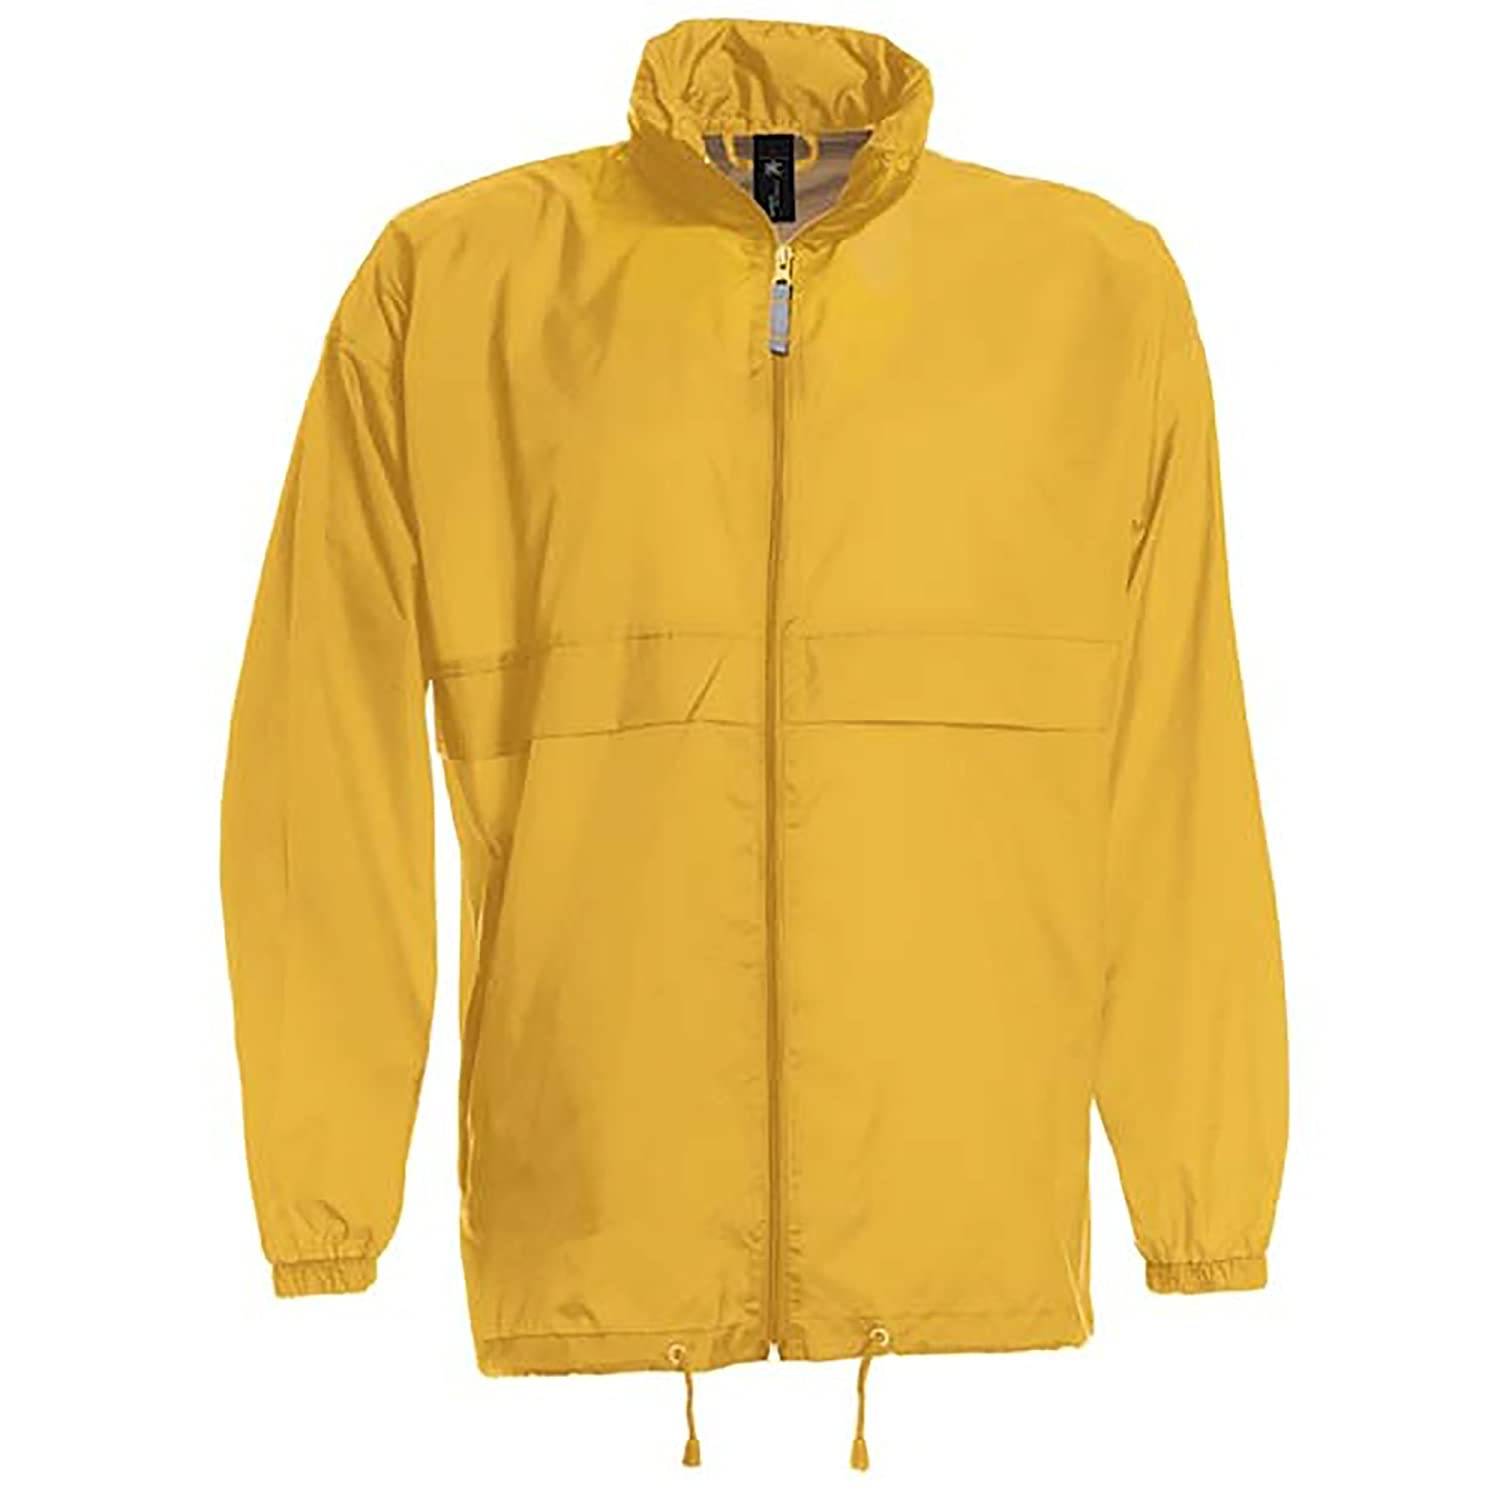 B&C Sirocco Mens Lightweight Jacket / Mens Outer Jackets